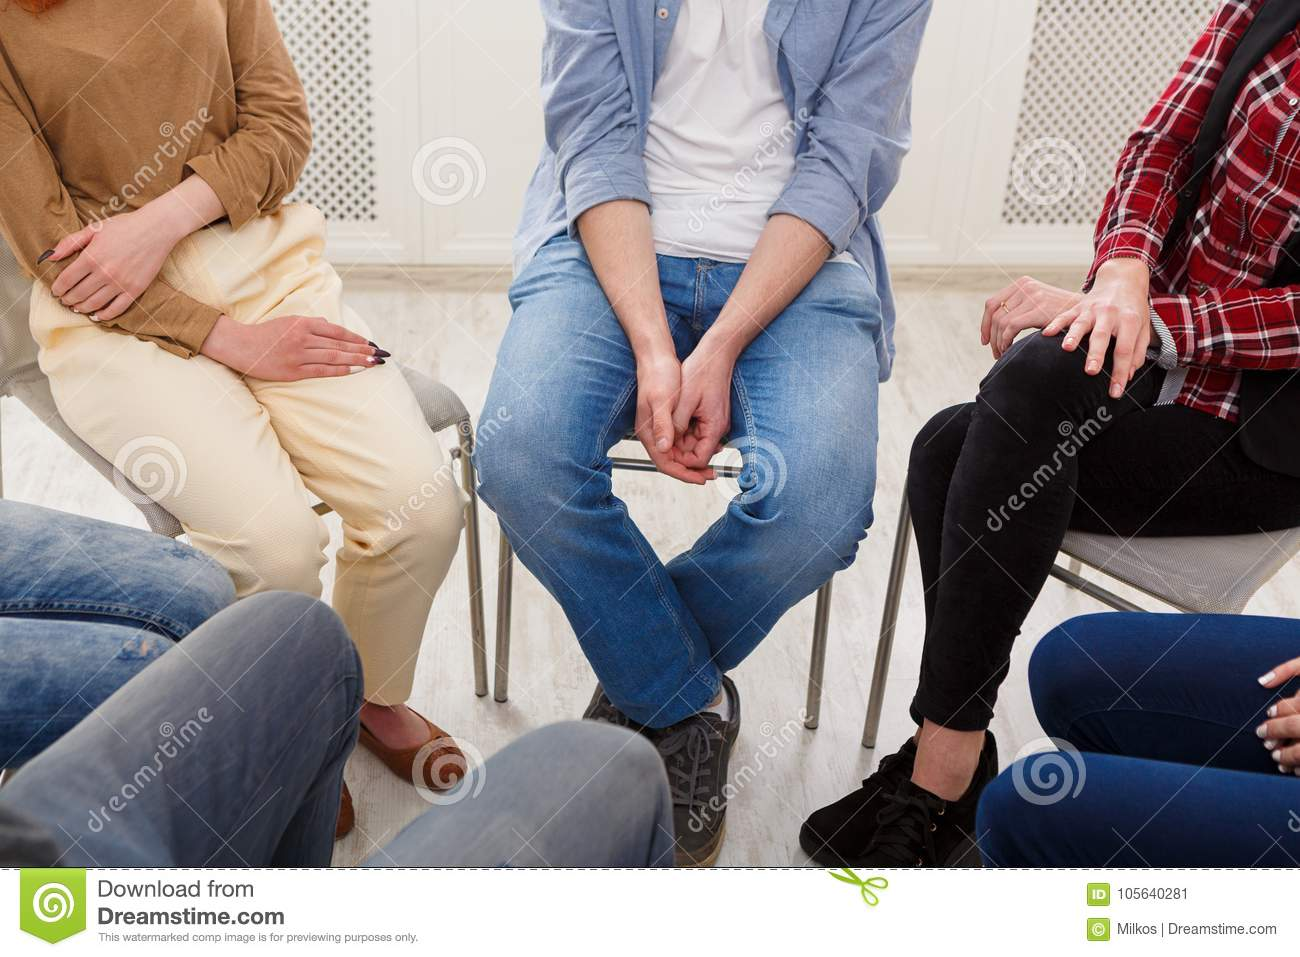 Group therapy, psychology support meeting